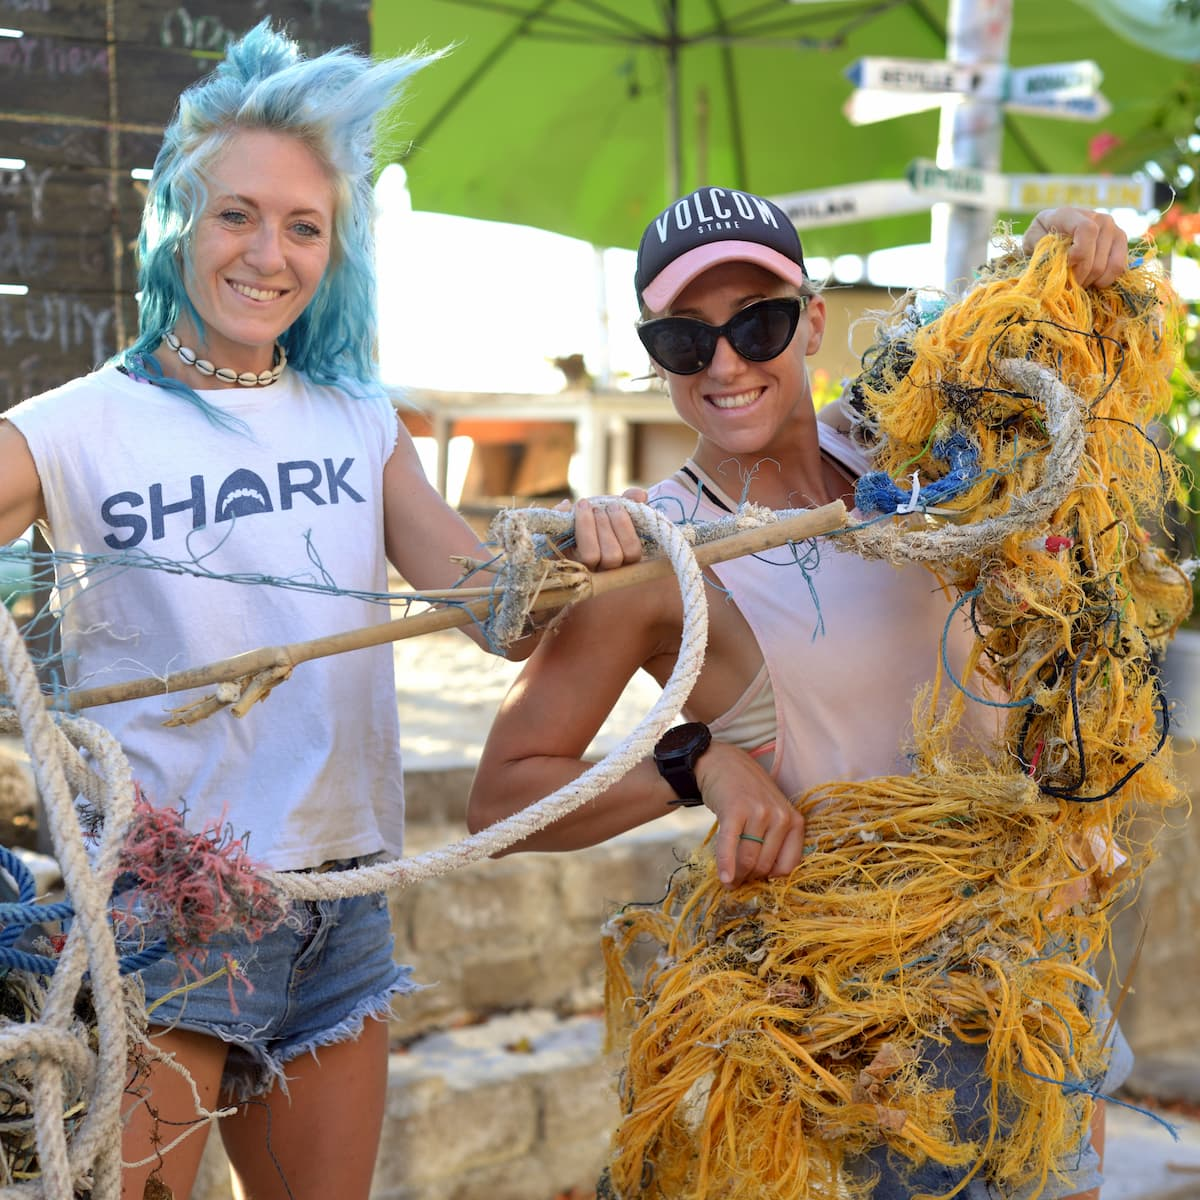 Help organizing eco events - Picture by Gili Eco Trust